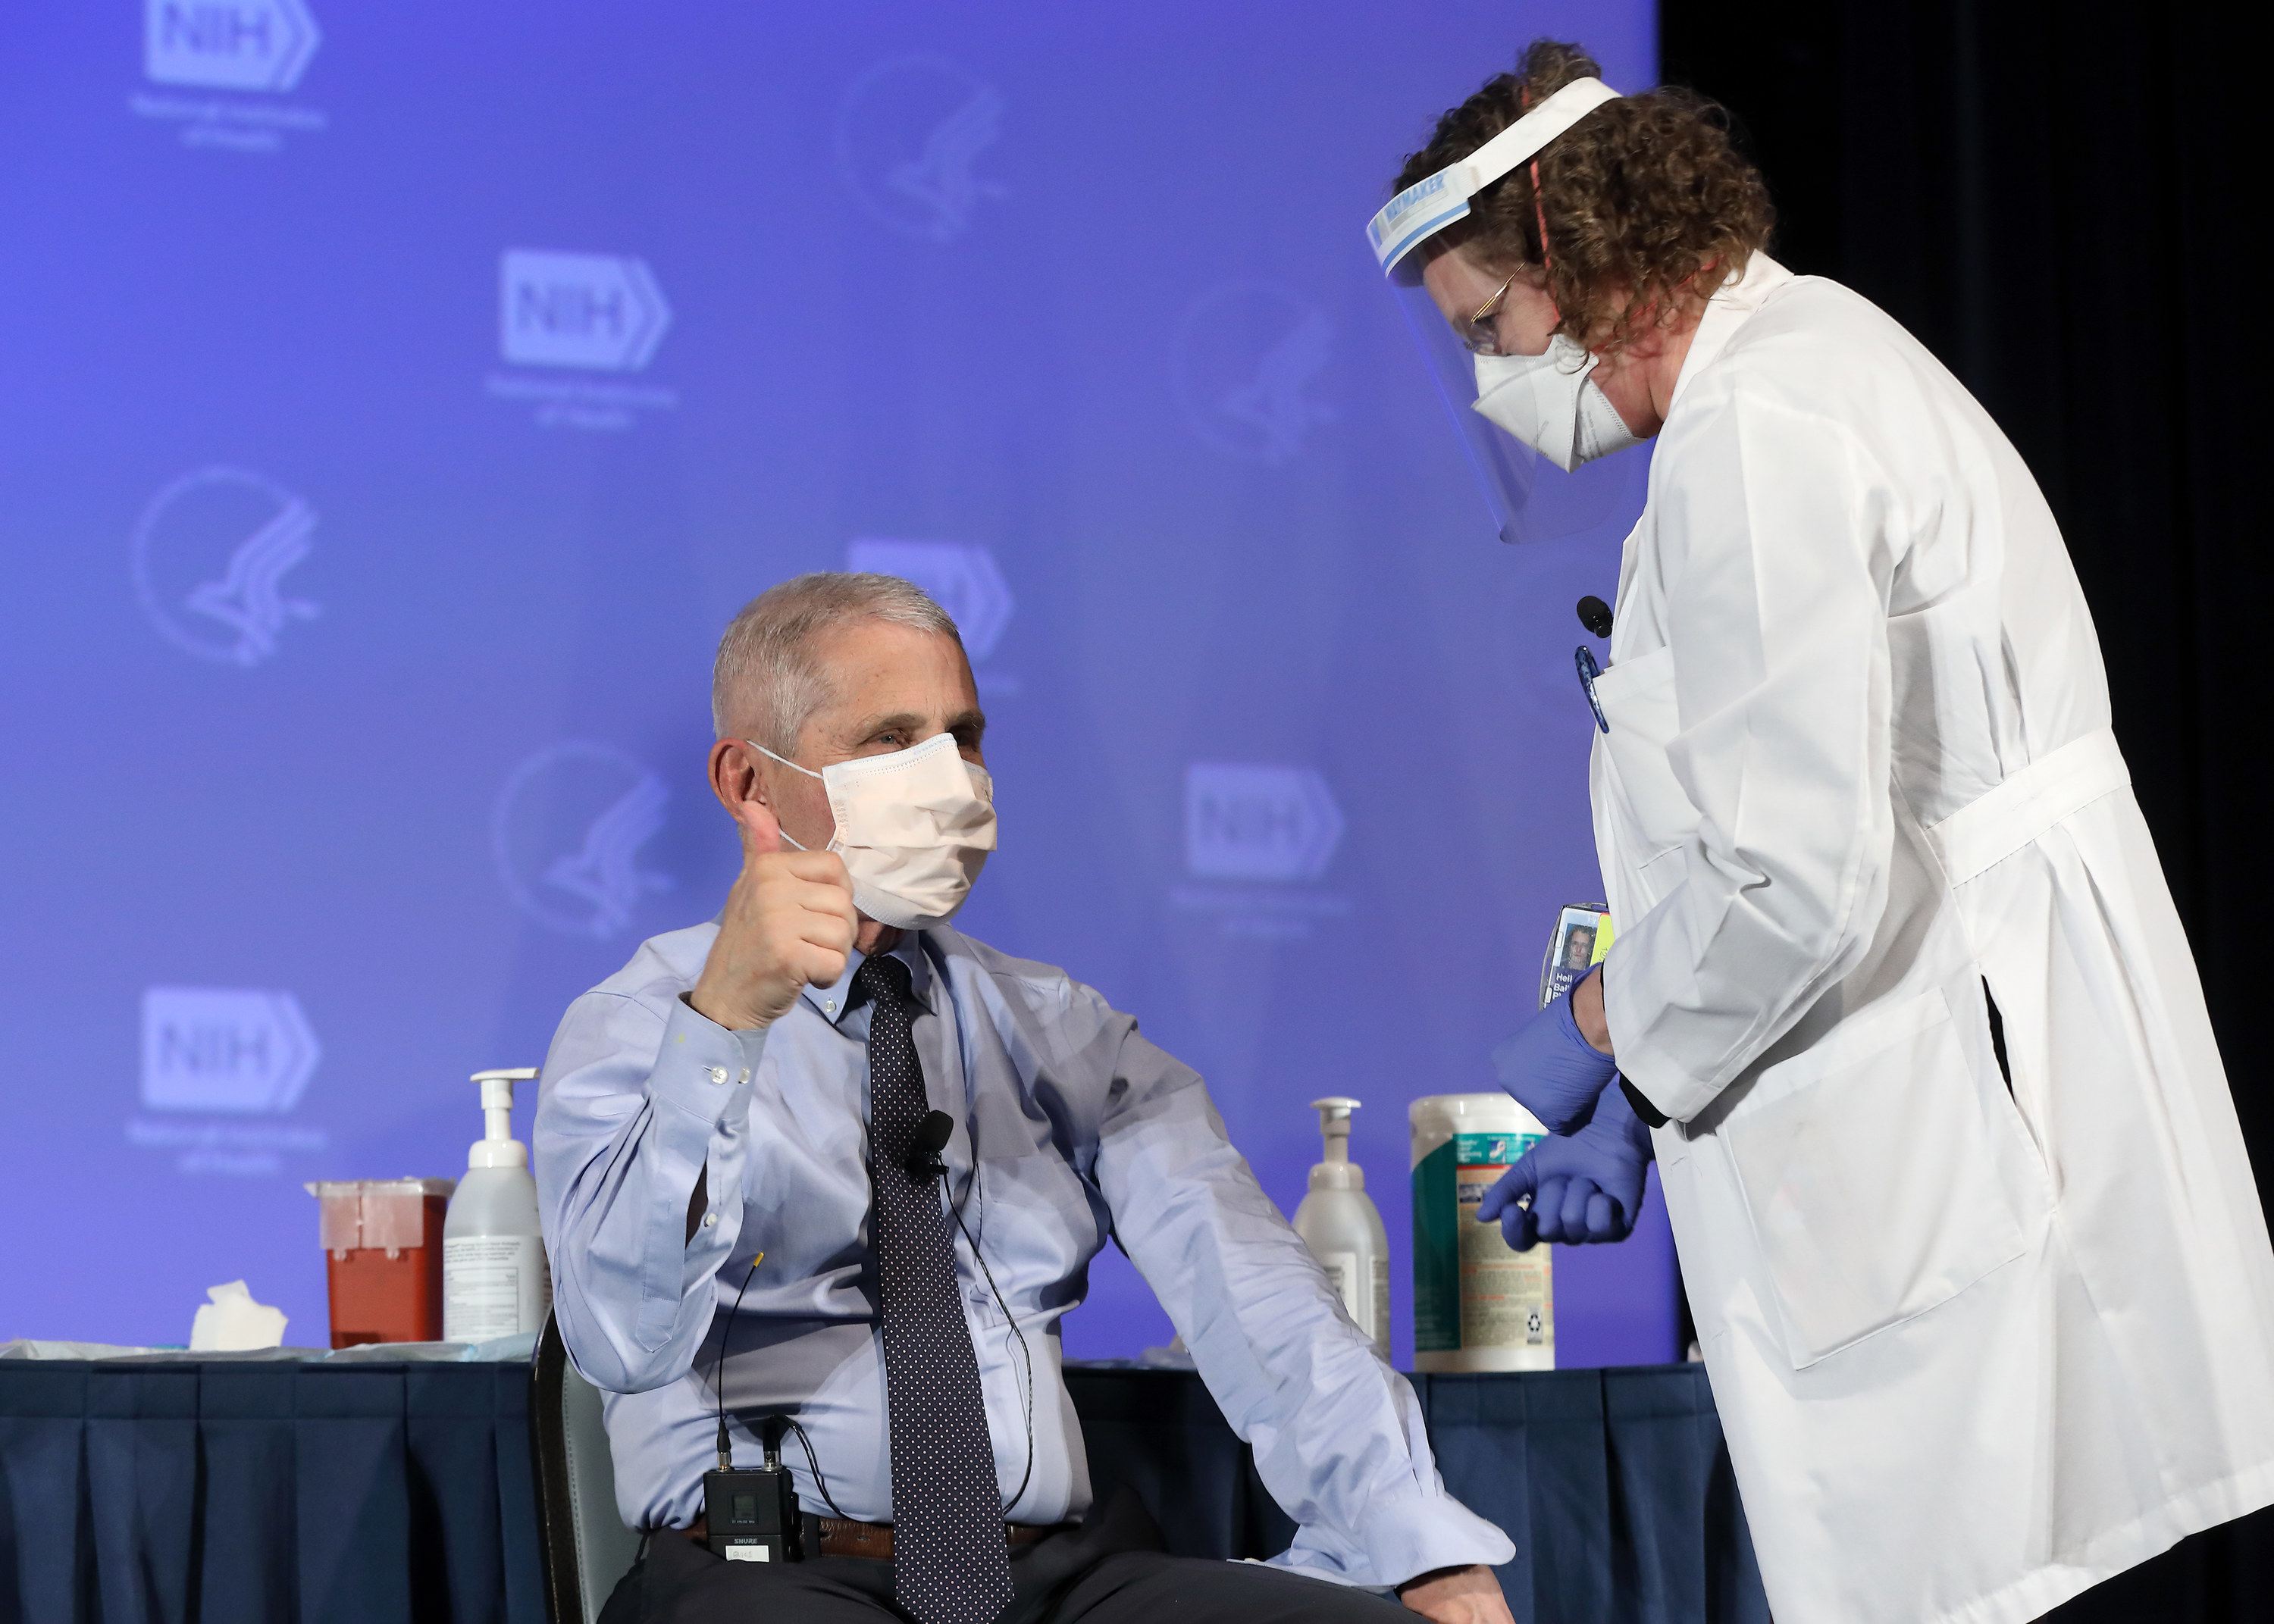 Dr Anthony Fauci gives a thumbs-up, wearing a face mask and about to receive a vaccine